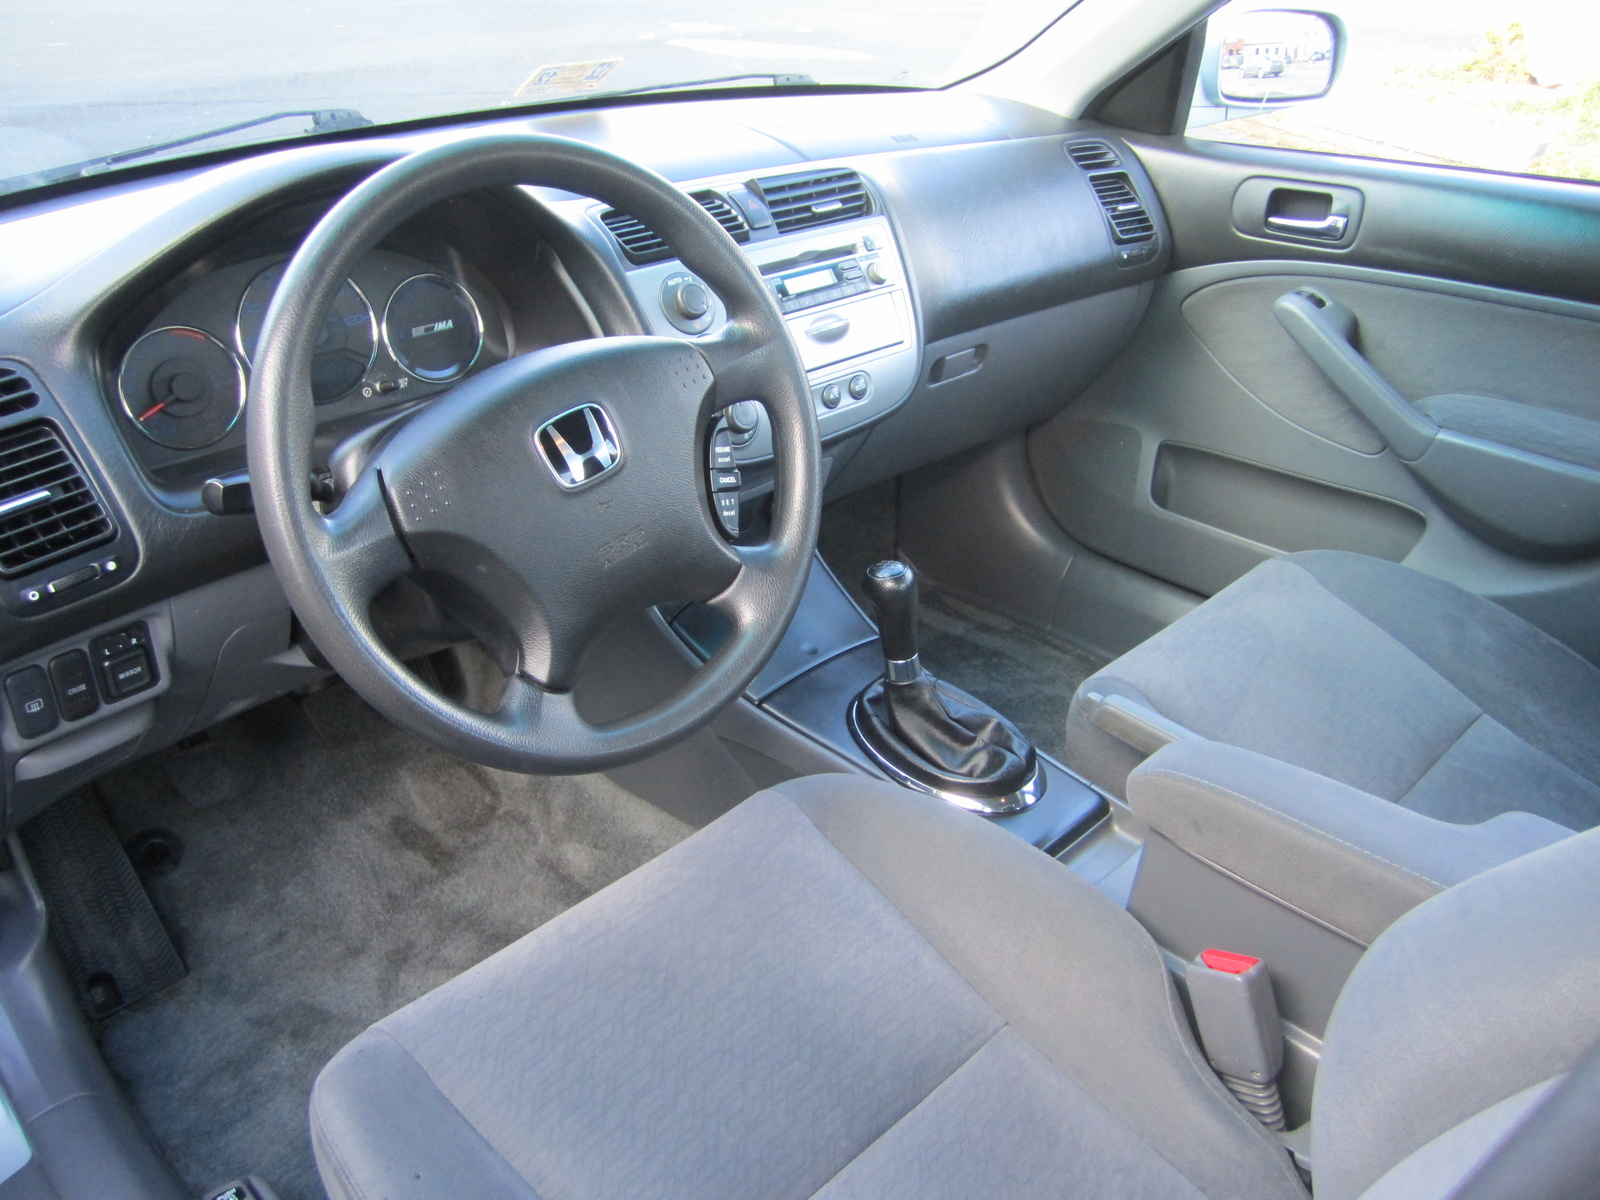 2005 Honda Civic Interior Pictures Cargurus